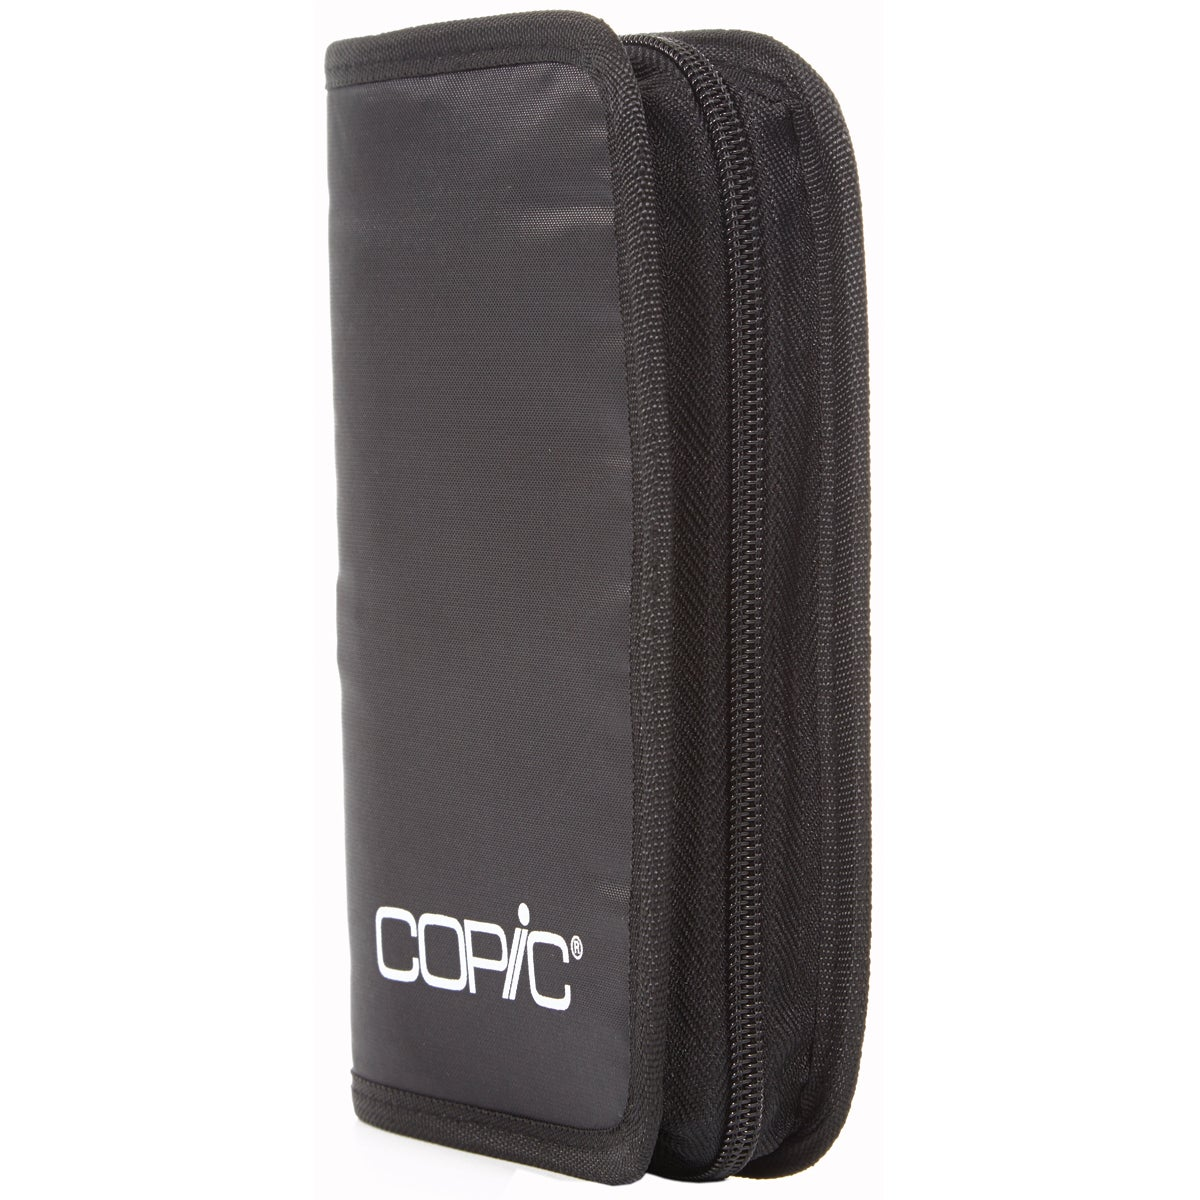 Copic Marker Mini Wallet - Empty-Holds 11 Markers (Holds ...